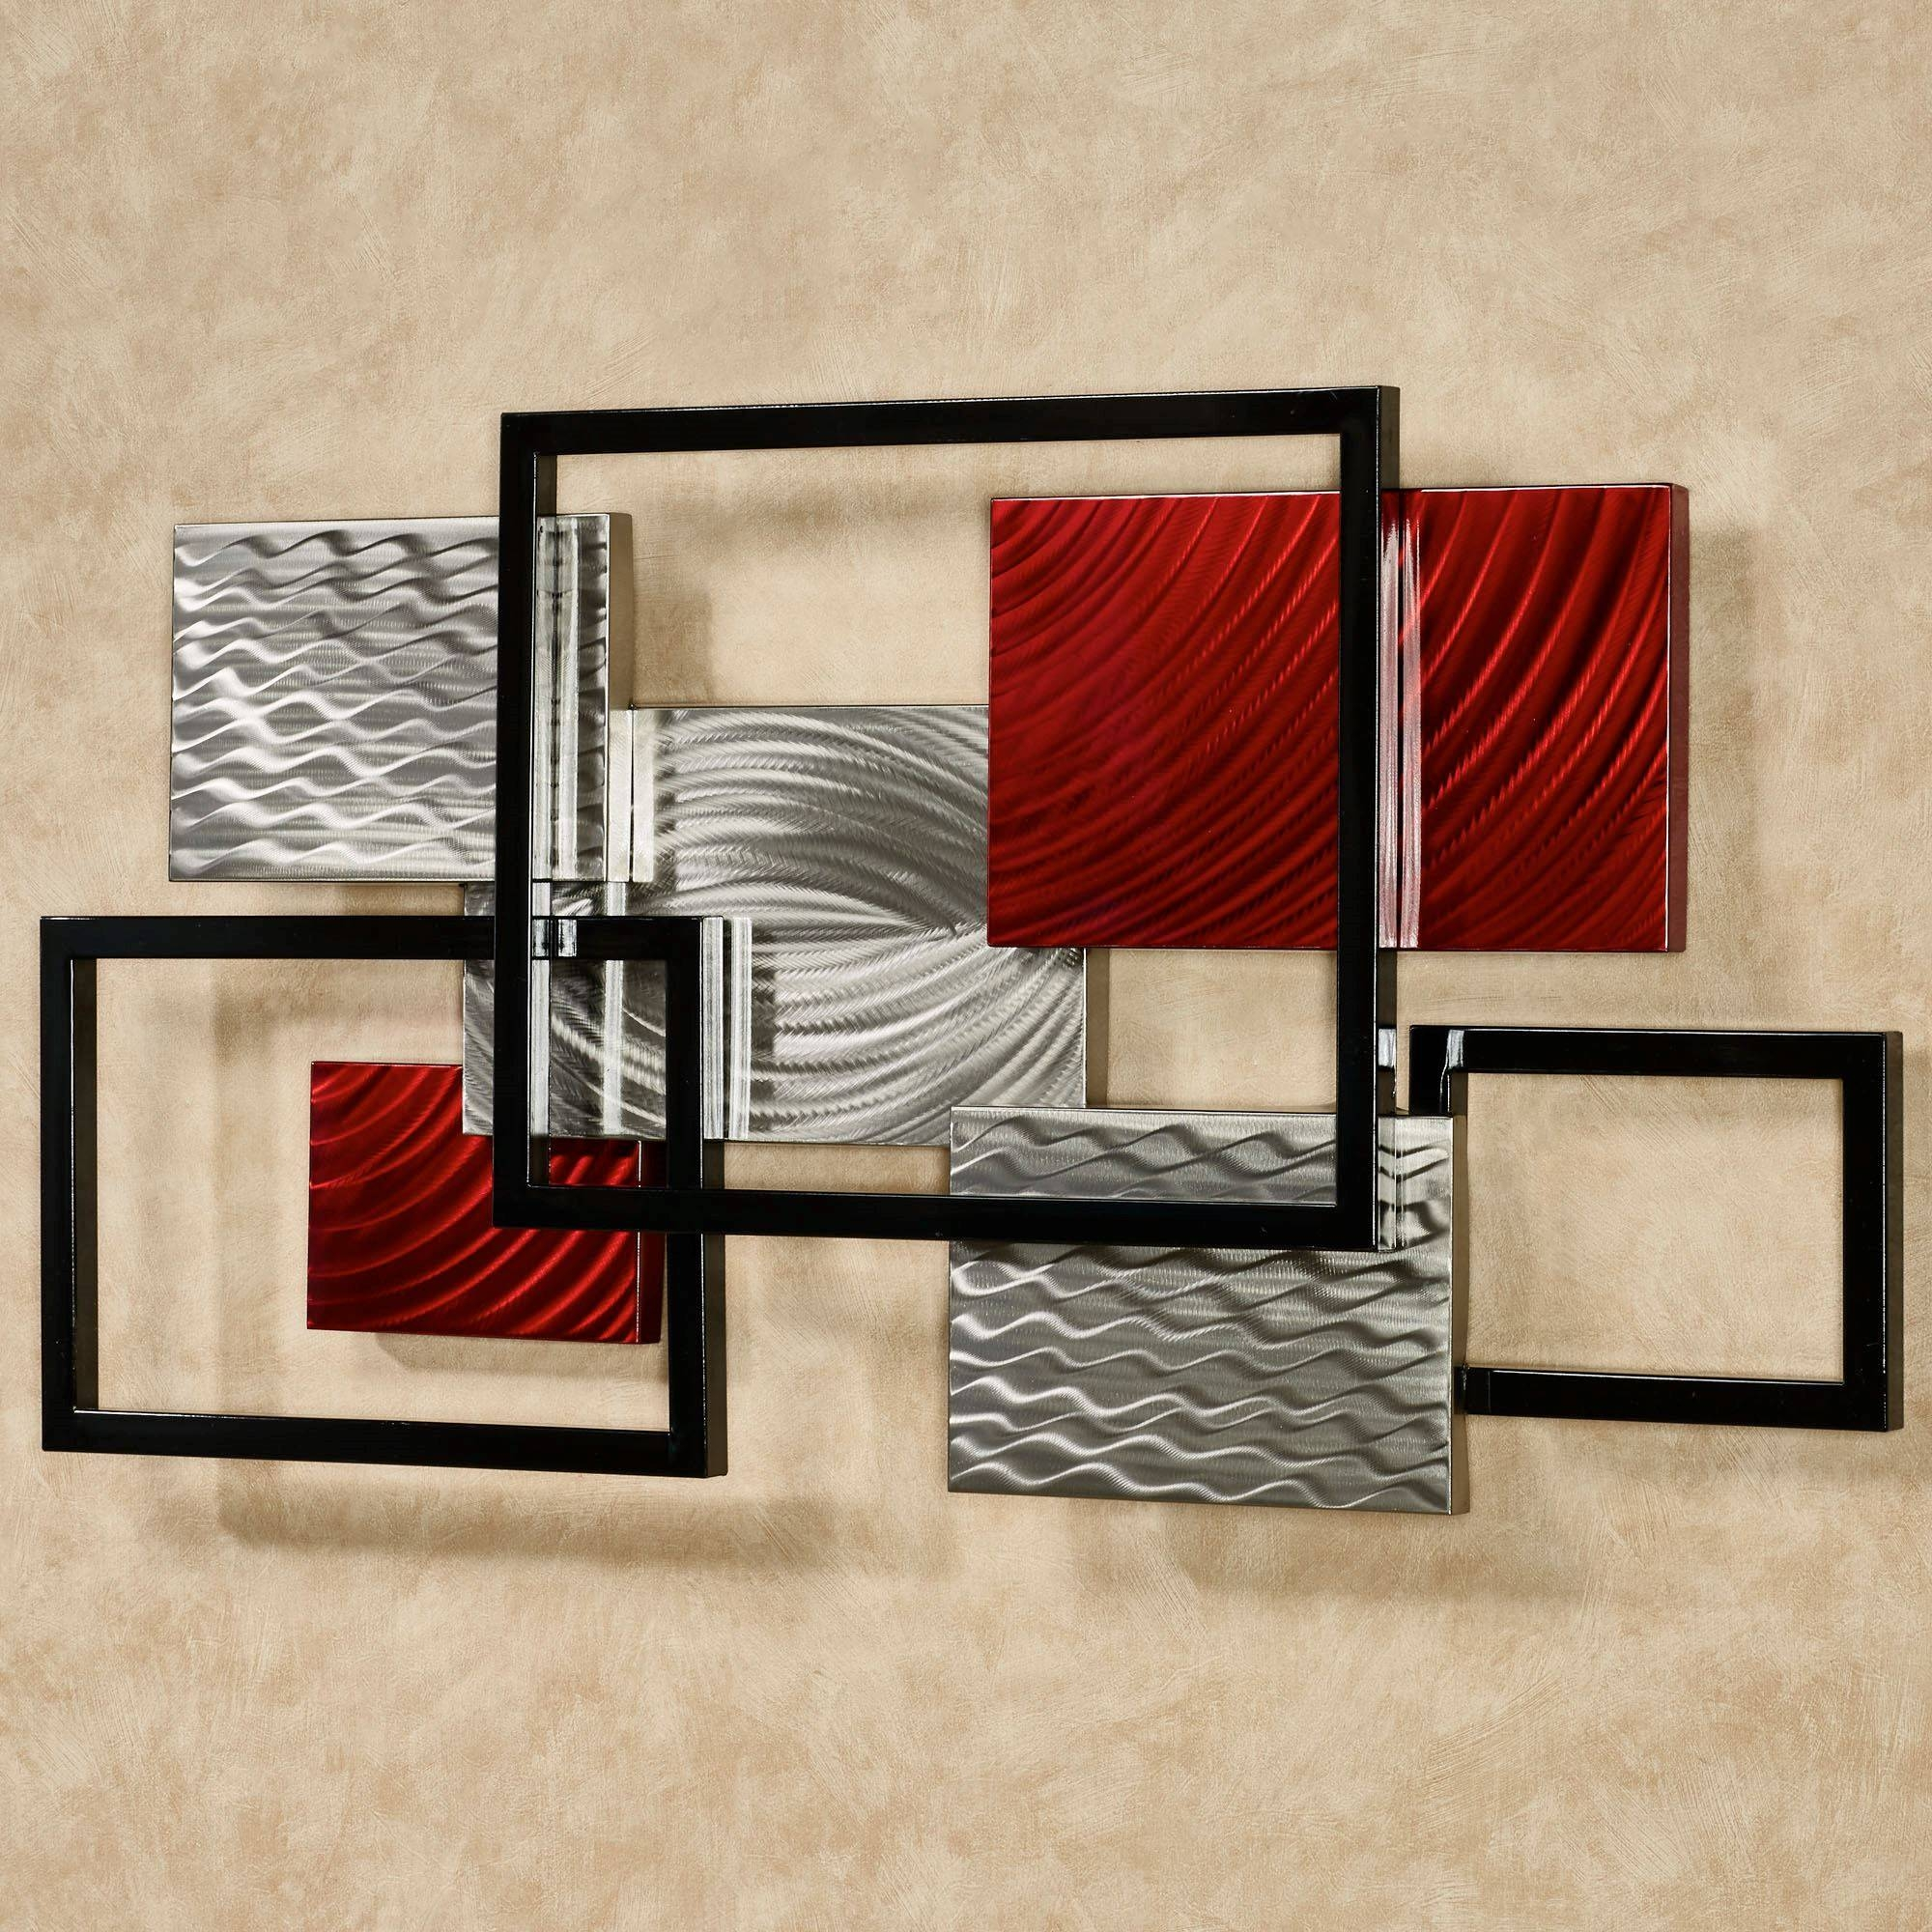 Epic Contemporary Metal Wall Art Sculpture M67 On Home Decoration Within Recent Contemporary Metal Wall Art Decor (View 15 of 20)